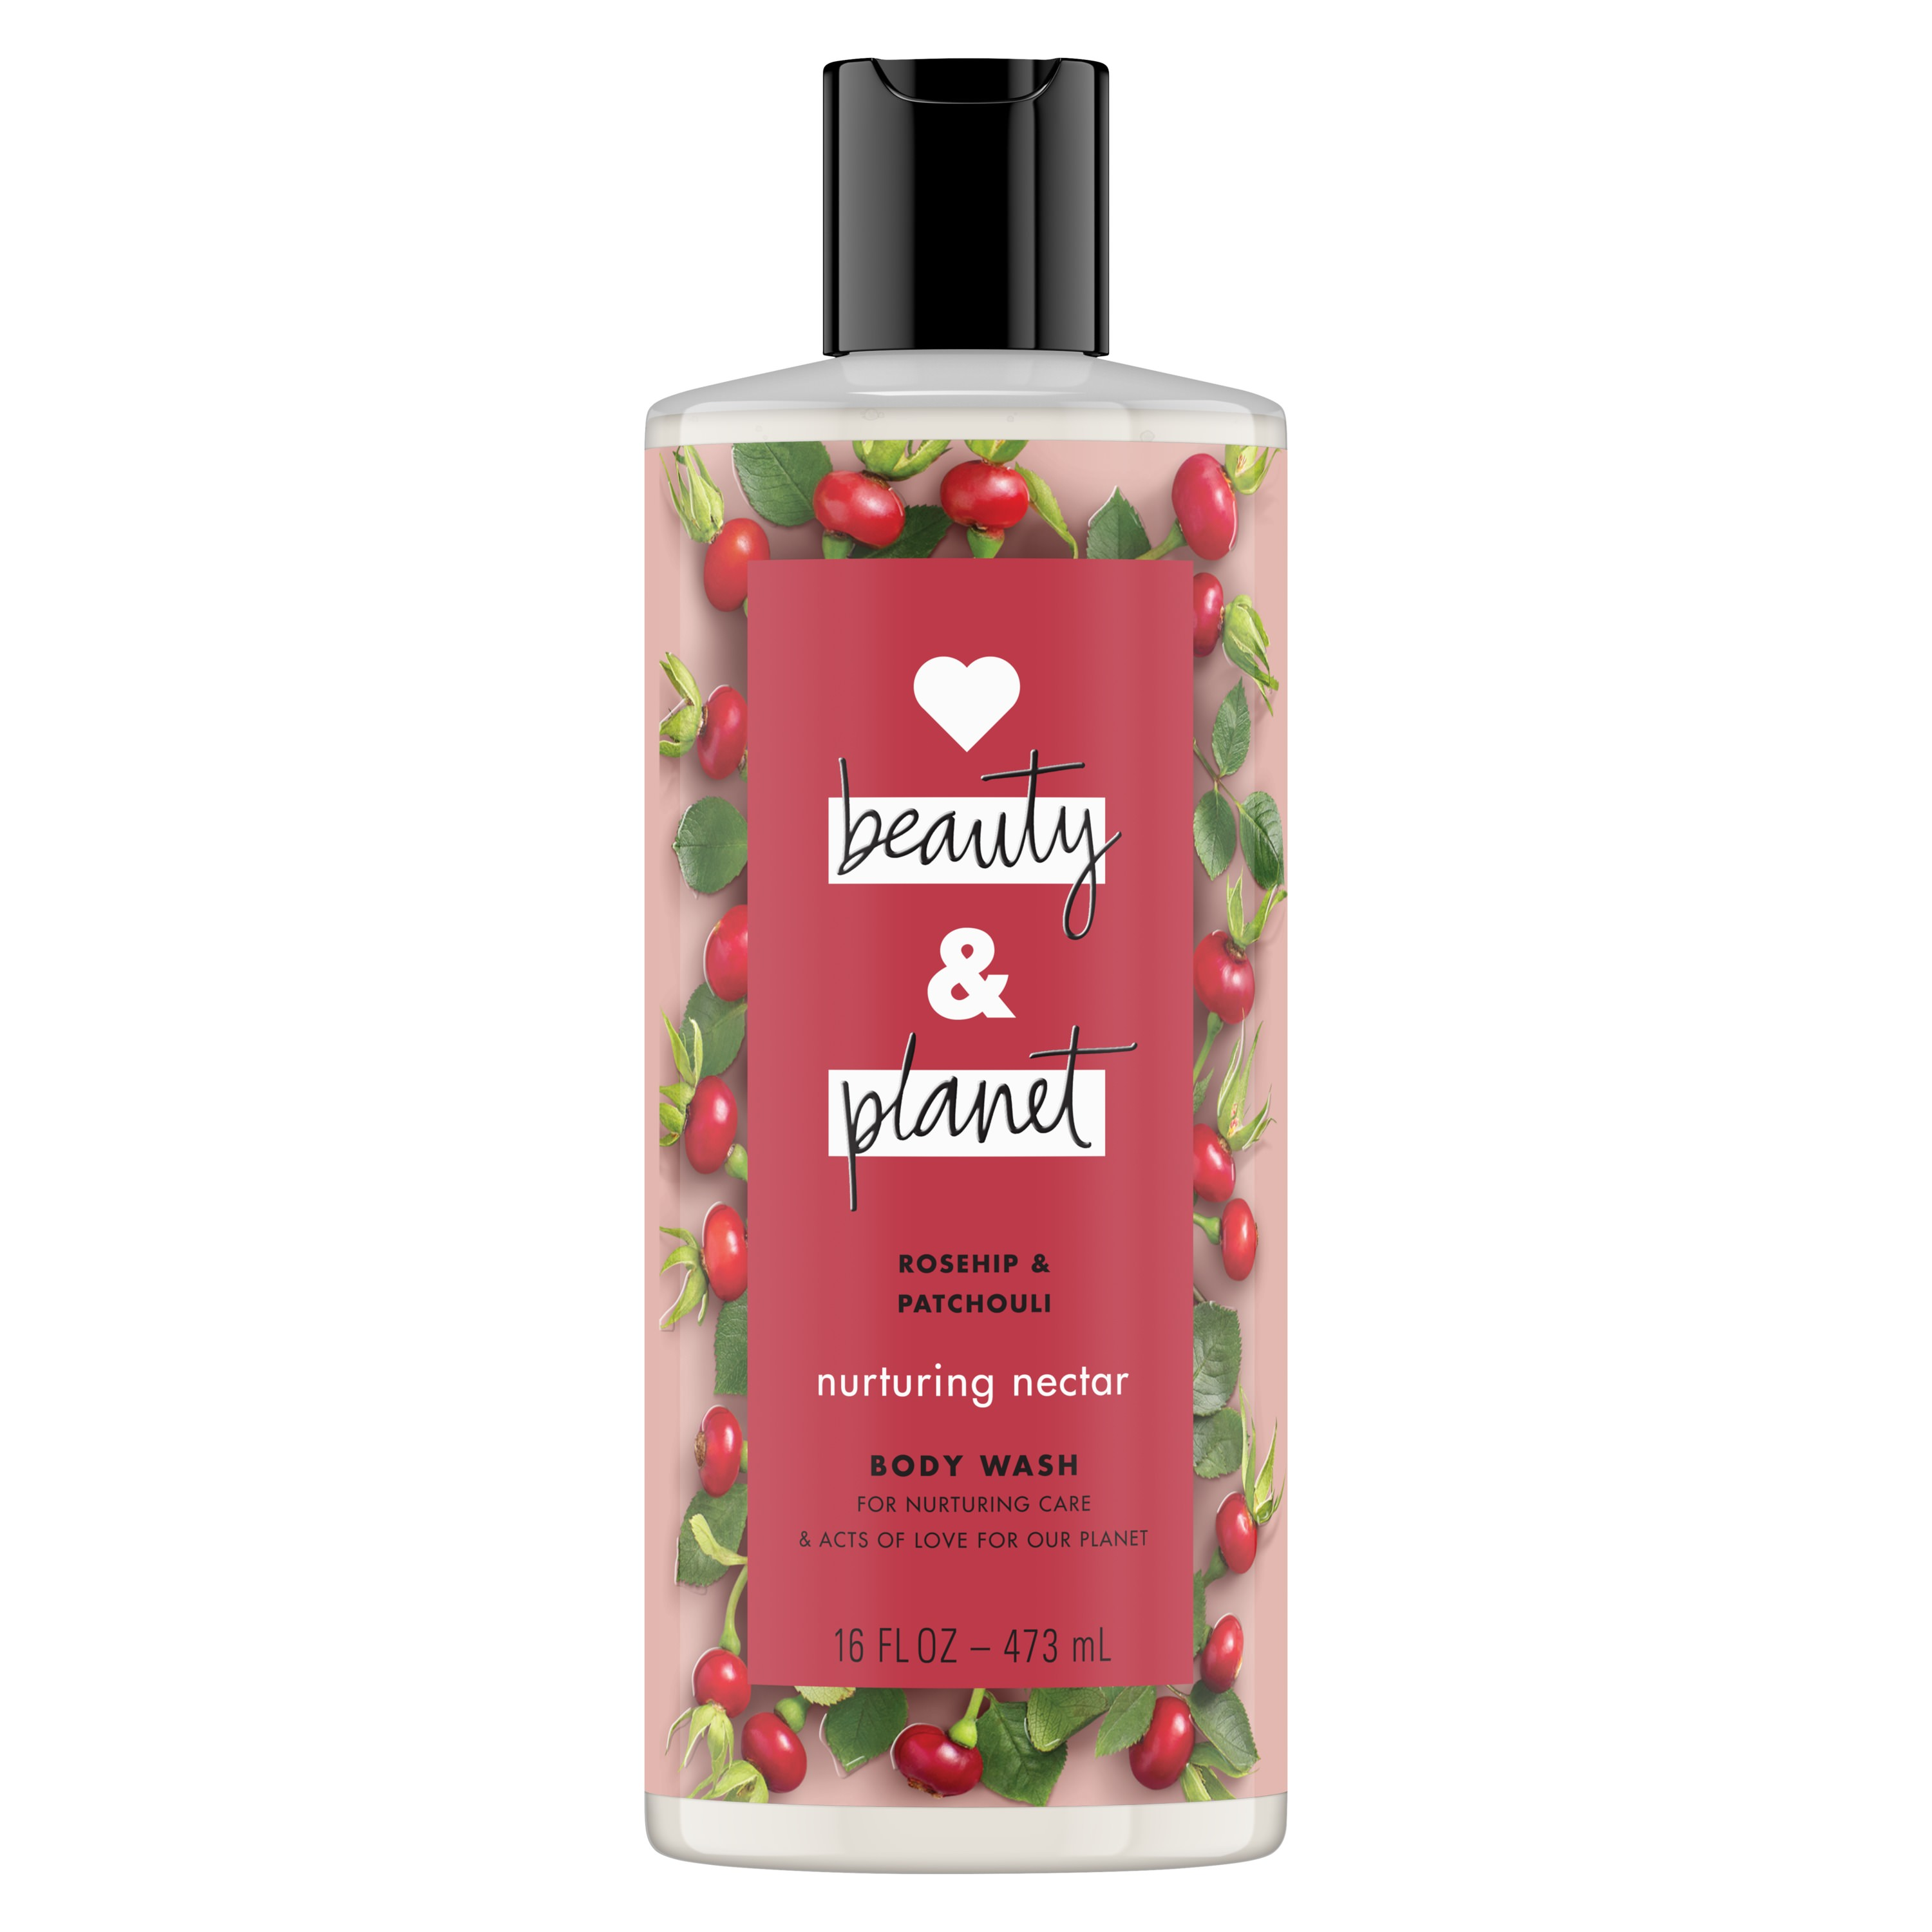 Love Beauty And Planet Body Wash Rosehip & Patchouli, for nurturing care 16 oz